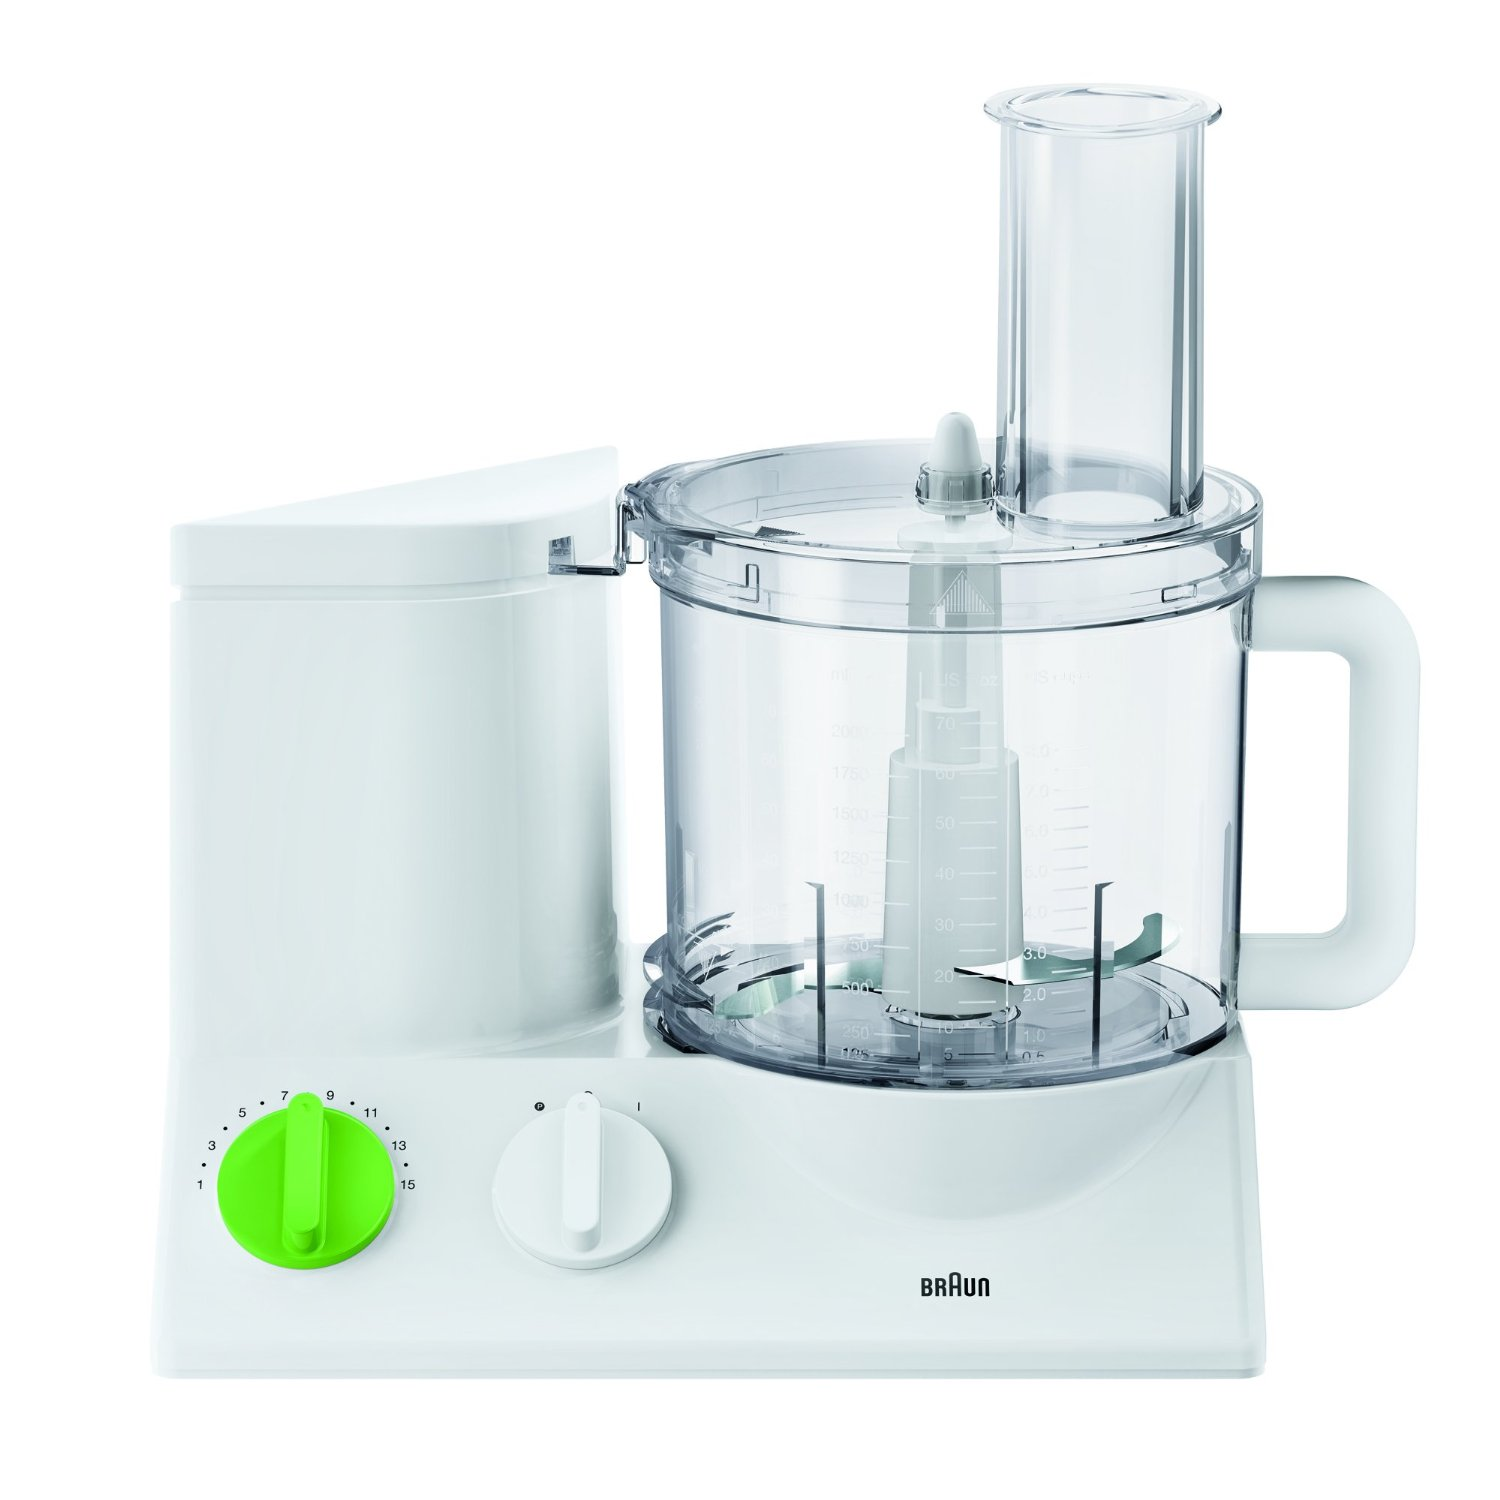 Braun FP3010 Tribute Collection Food Processor, 220 volt